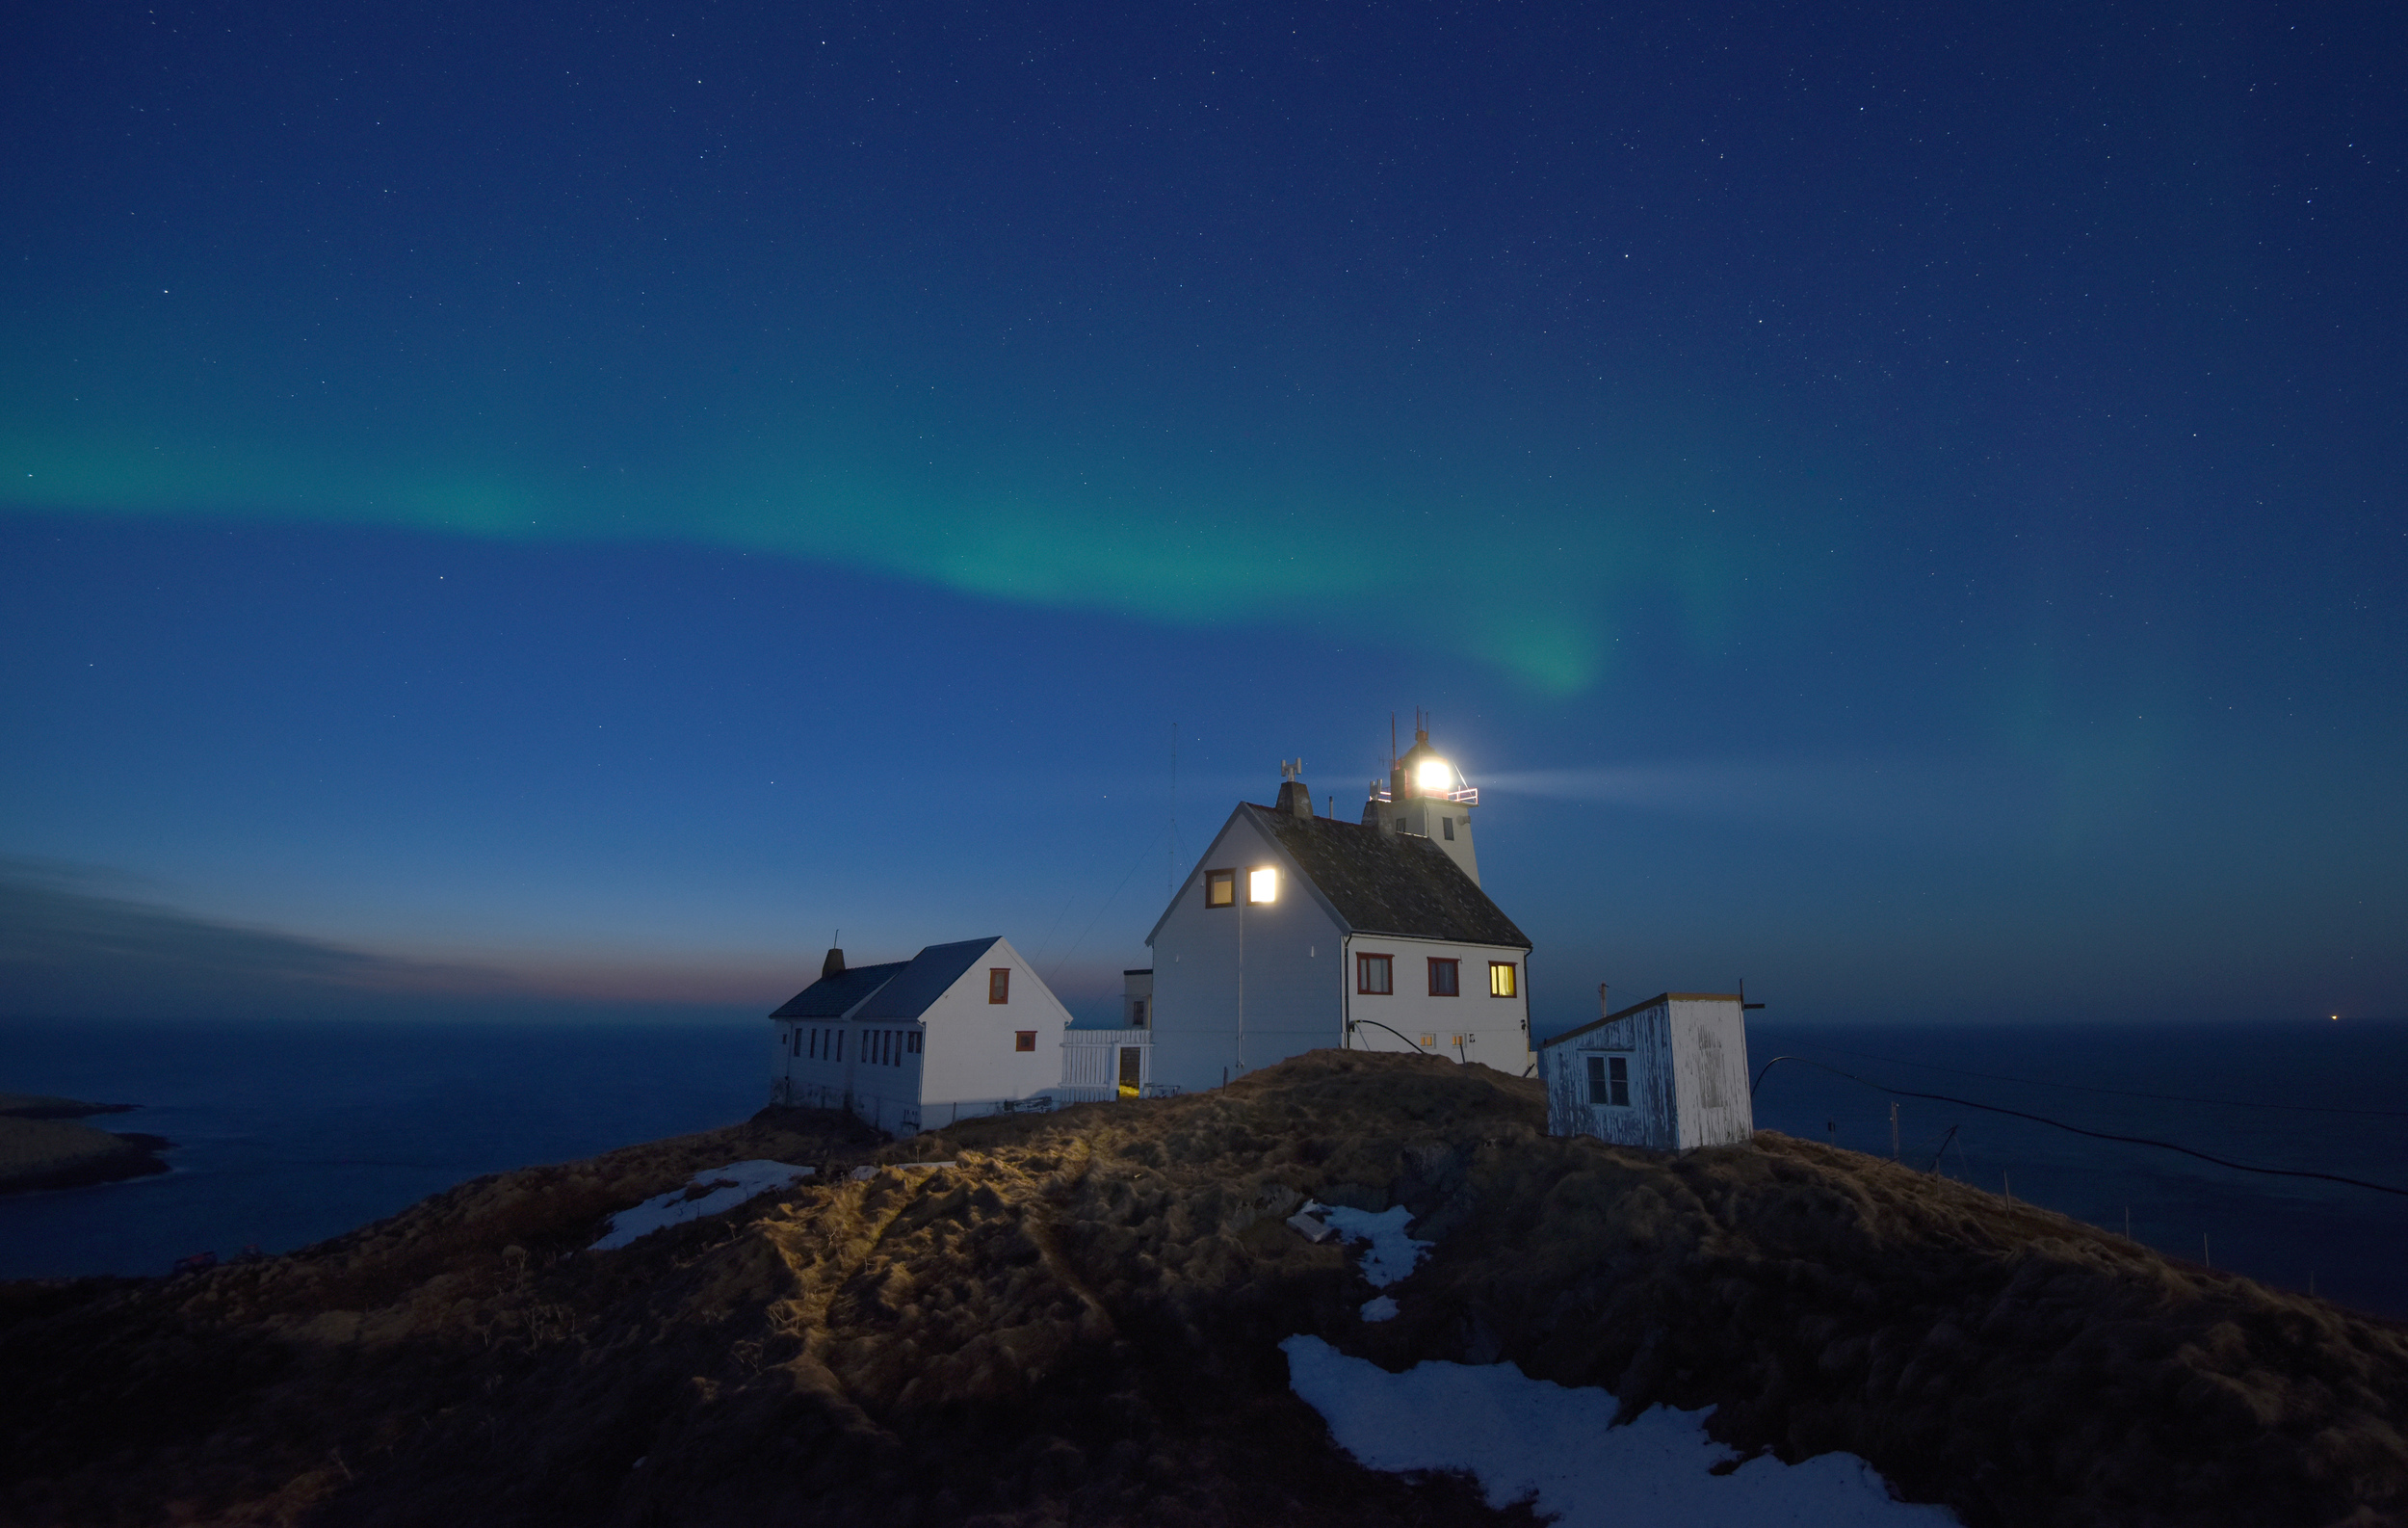 Hornøya lighthouse by night w auroras April 2015 Amundsen © Biotope.jpg